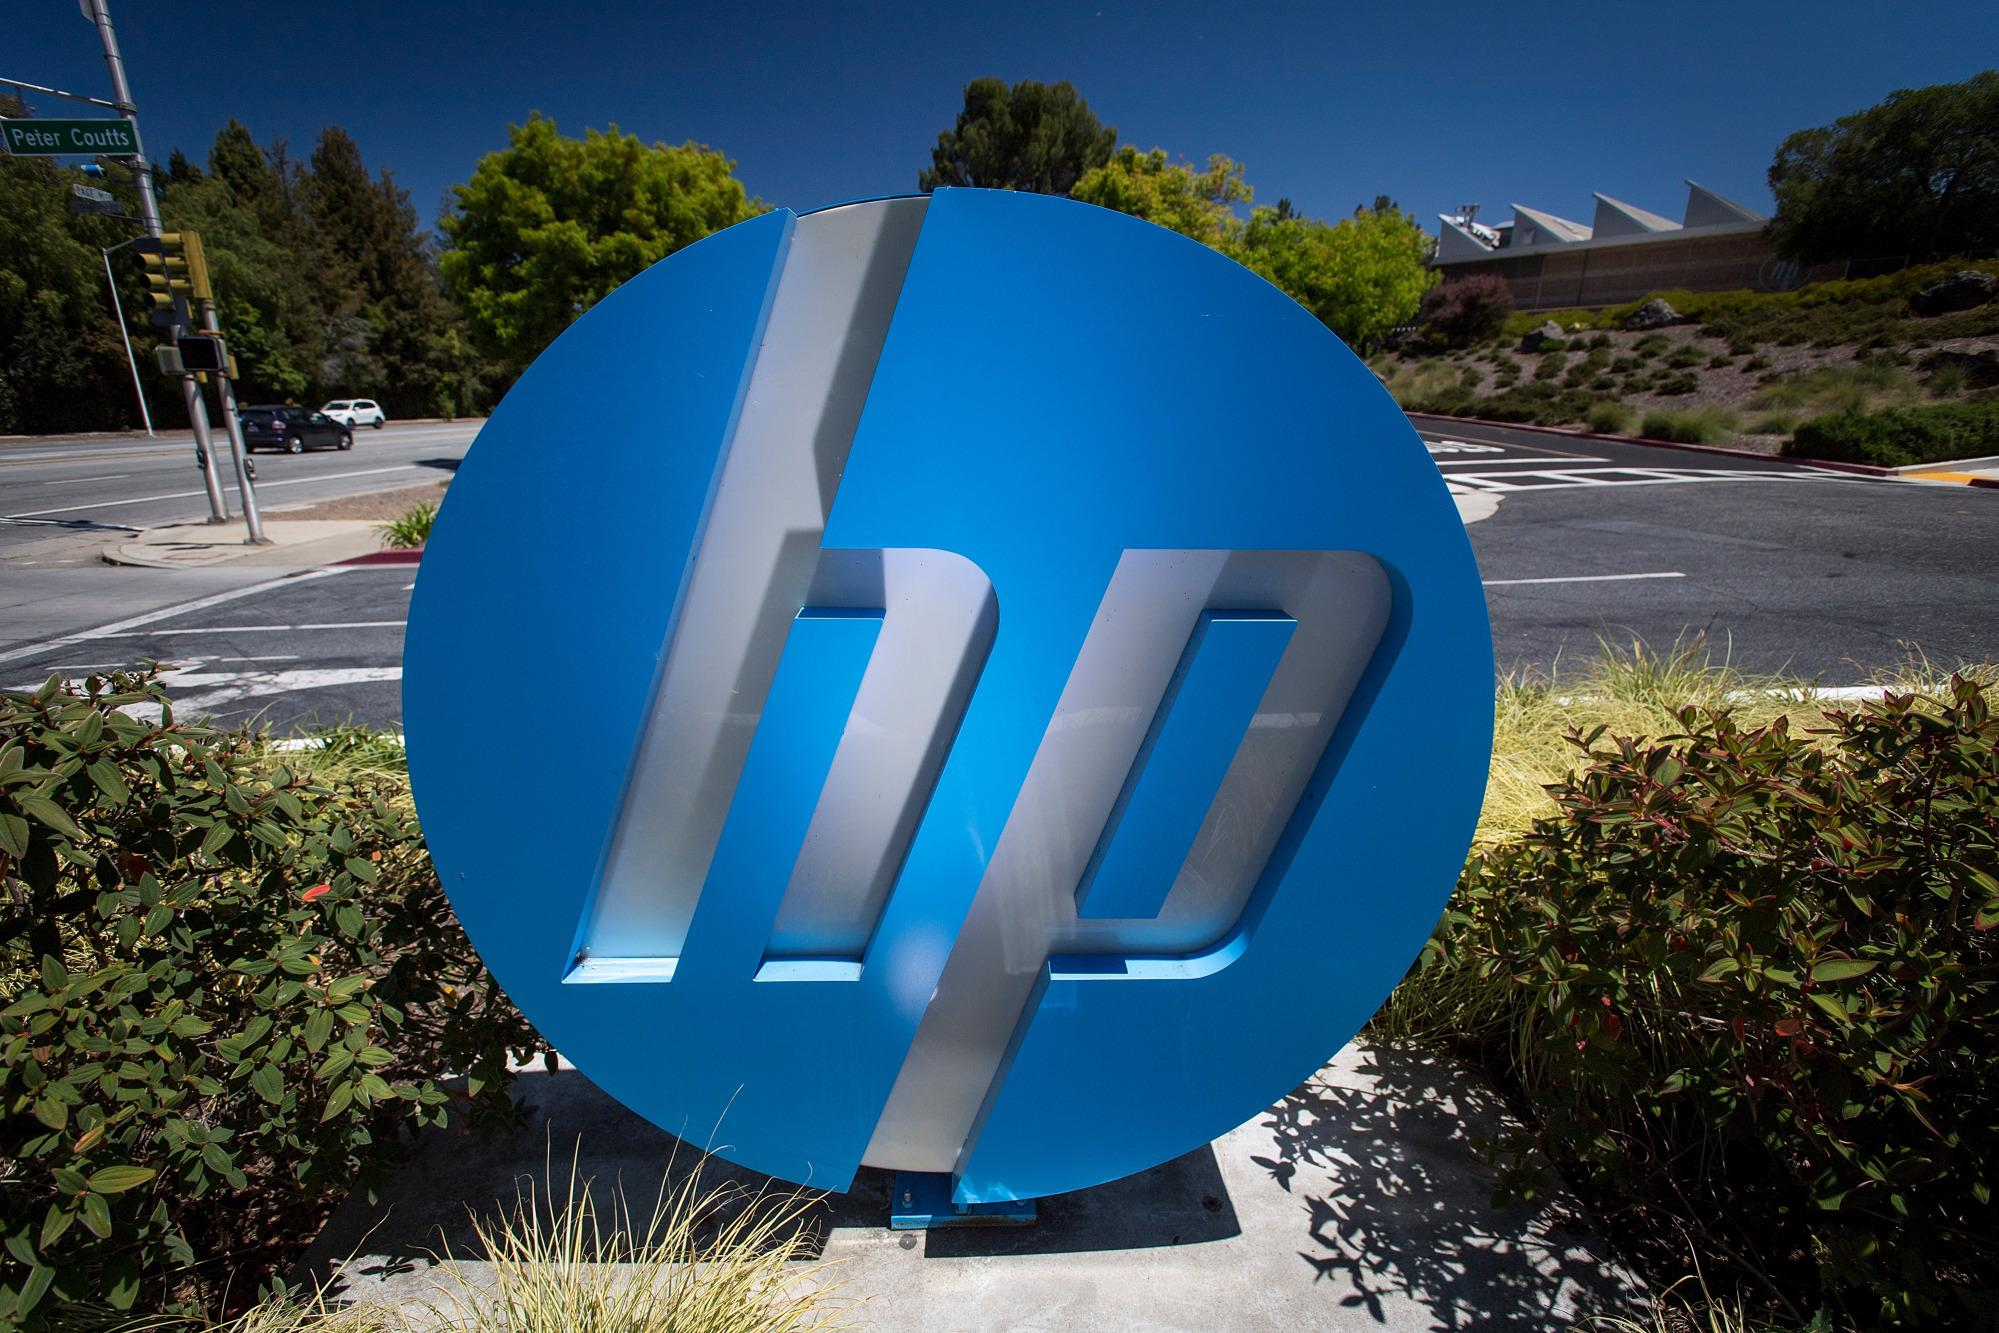 """(Bloomberg) -- HP Inc. and Dell Technologies Inc. plan to move as much as 30% of their notebook production away from China, the Nikkei cited anonymous sources as saying, as global technology giants try to avoid escalating tariffs on U.S.-bound goods.Microsoft Corp., Amazon.com Inc., Sony Corp. and Nintendo Co. are also looking to move some of their game console and smart speaker manufacturing away from the country, the Nikkei Asian Review cited those sources as saying. Other companies including Lenovo Group Ltd., Acer Inc. and Asustek Computer Inc. are evaluating their options, the media outlet reported.Corporations foreign and domestic are seeking to pivot production away from China amid U.S. President Donald Trump's efforts to use punitive tariffs to negotiate friendlier trade terms. While many are drawing up contingency plans, shifting select assembly operations or exploring alternative manufacturing venues, few have moved output in significant amounts and China's status as the world's production base for electronics is unlikely to diminish anytime soon. Alphabet Inc.'s Google has already shifted much of its production of U.S.-bound motherboards to Taiwan, averting a 25% tariff, Bloomberg News reported last month.""""HP shares industry concerns that broad-based tariffs harm consumers by increasing the cost of electronics,"""" a spokesman said in a statement. """"We are actively monitoring the situation and will continue to work with government officials to advocate for the best interests of customers, partners and consumers."""" A Dell spokesman noted that it has a global supply chain and said the company continuously explores """"alternative sourcing, production, and logistics strategies to best serve our customers.""""A Lenovo representative said the Nikkei report was inaccurate, without elaborating. An Acer spokesman referred to CEO Jason Chen's comment in May that his company planned to finalize a production plan for U.S.-bound products later this year and is open to all optio"""